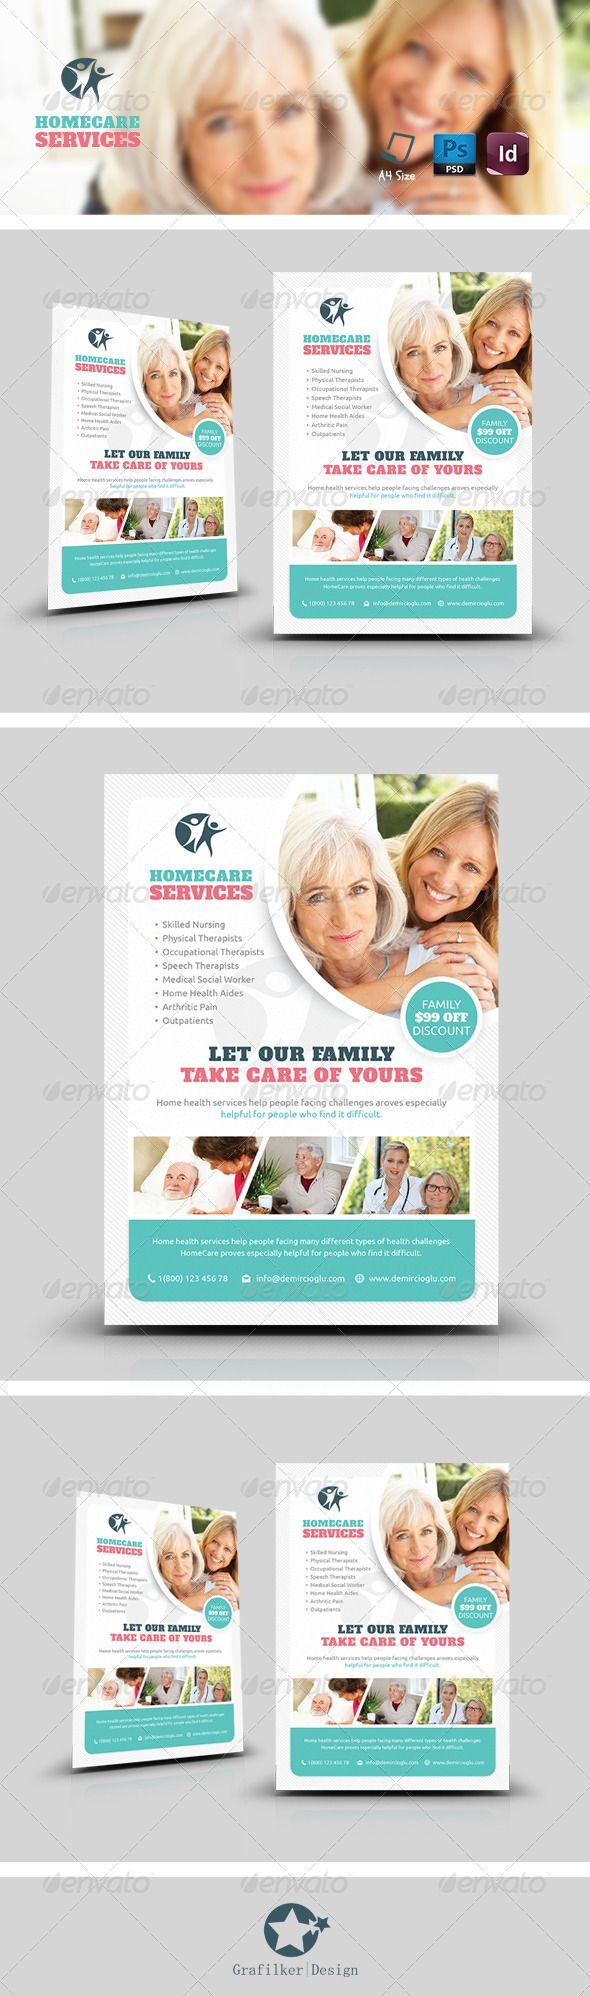 home care flyer templates health nursing homes and therapy home care flyer templates alzheimer s aid banners bathing cancer care